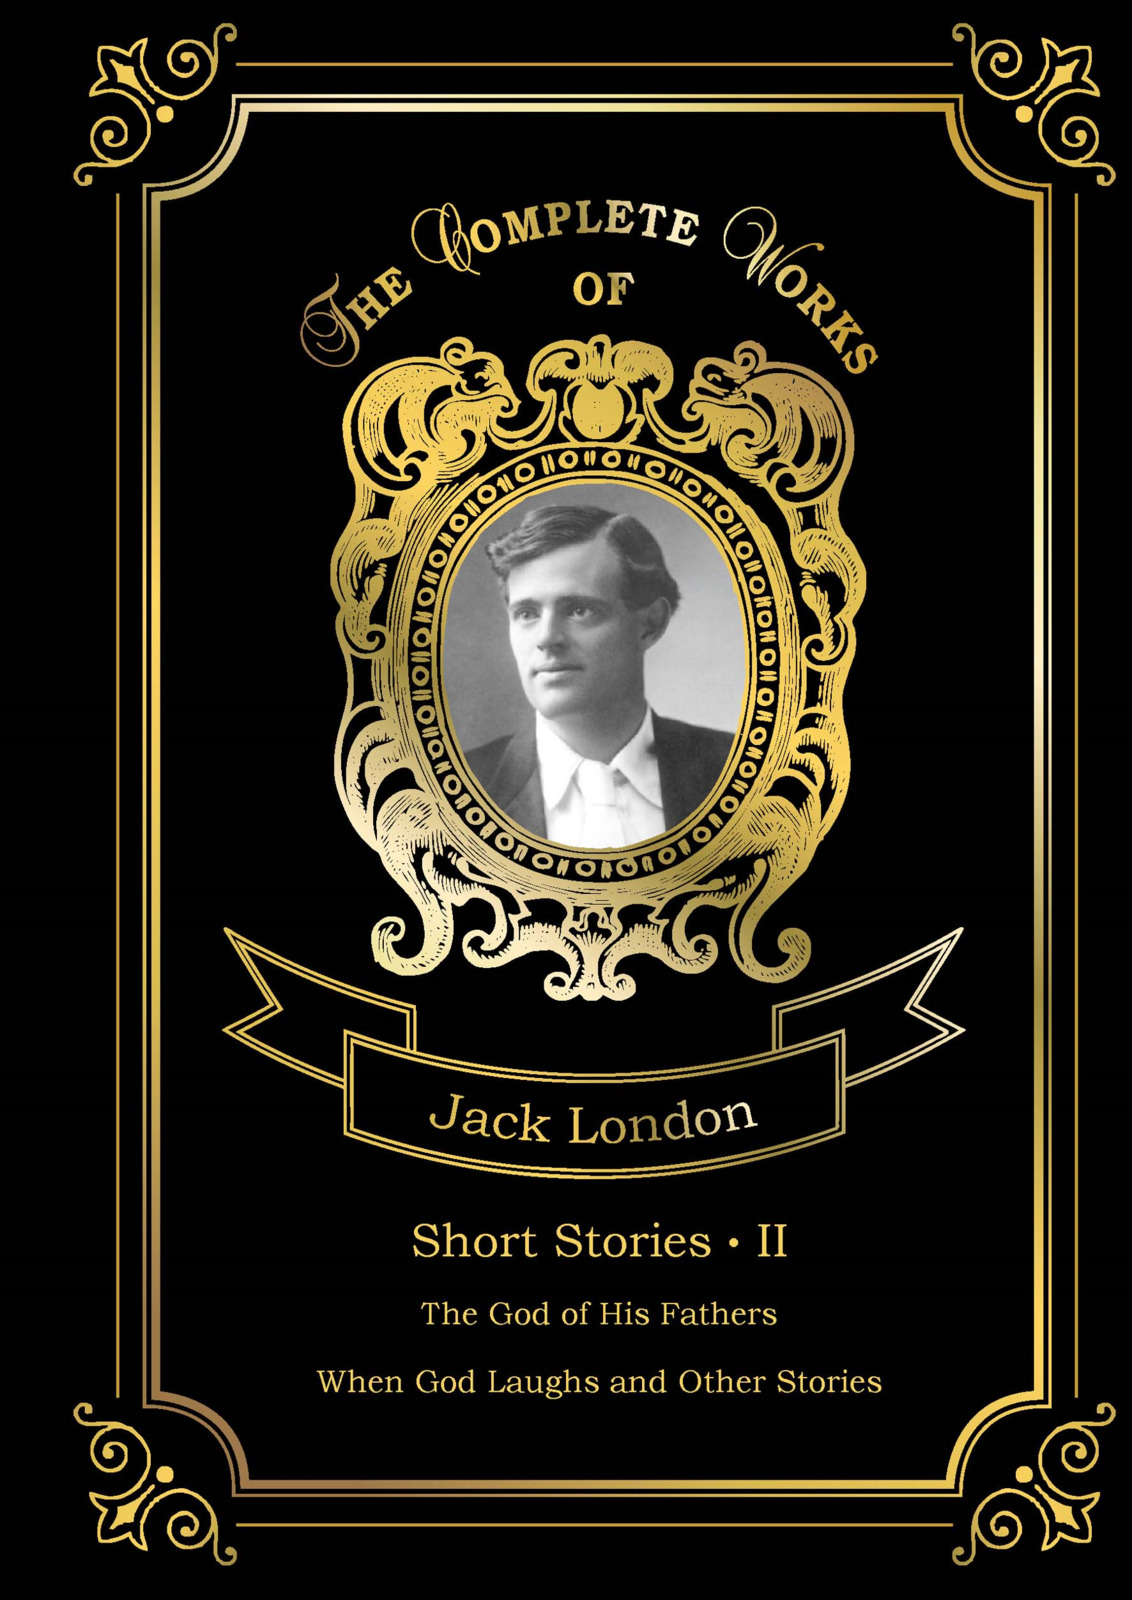 Jack London Short Stories II